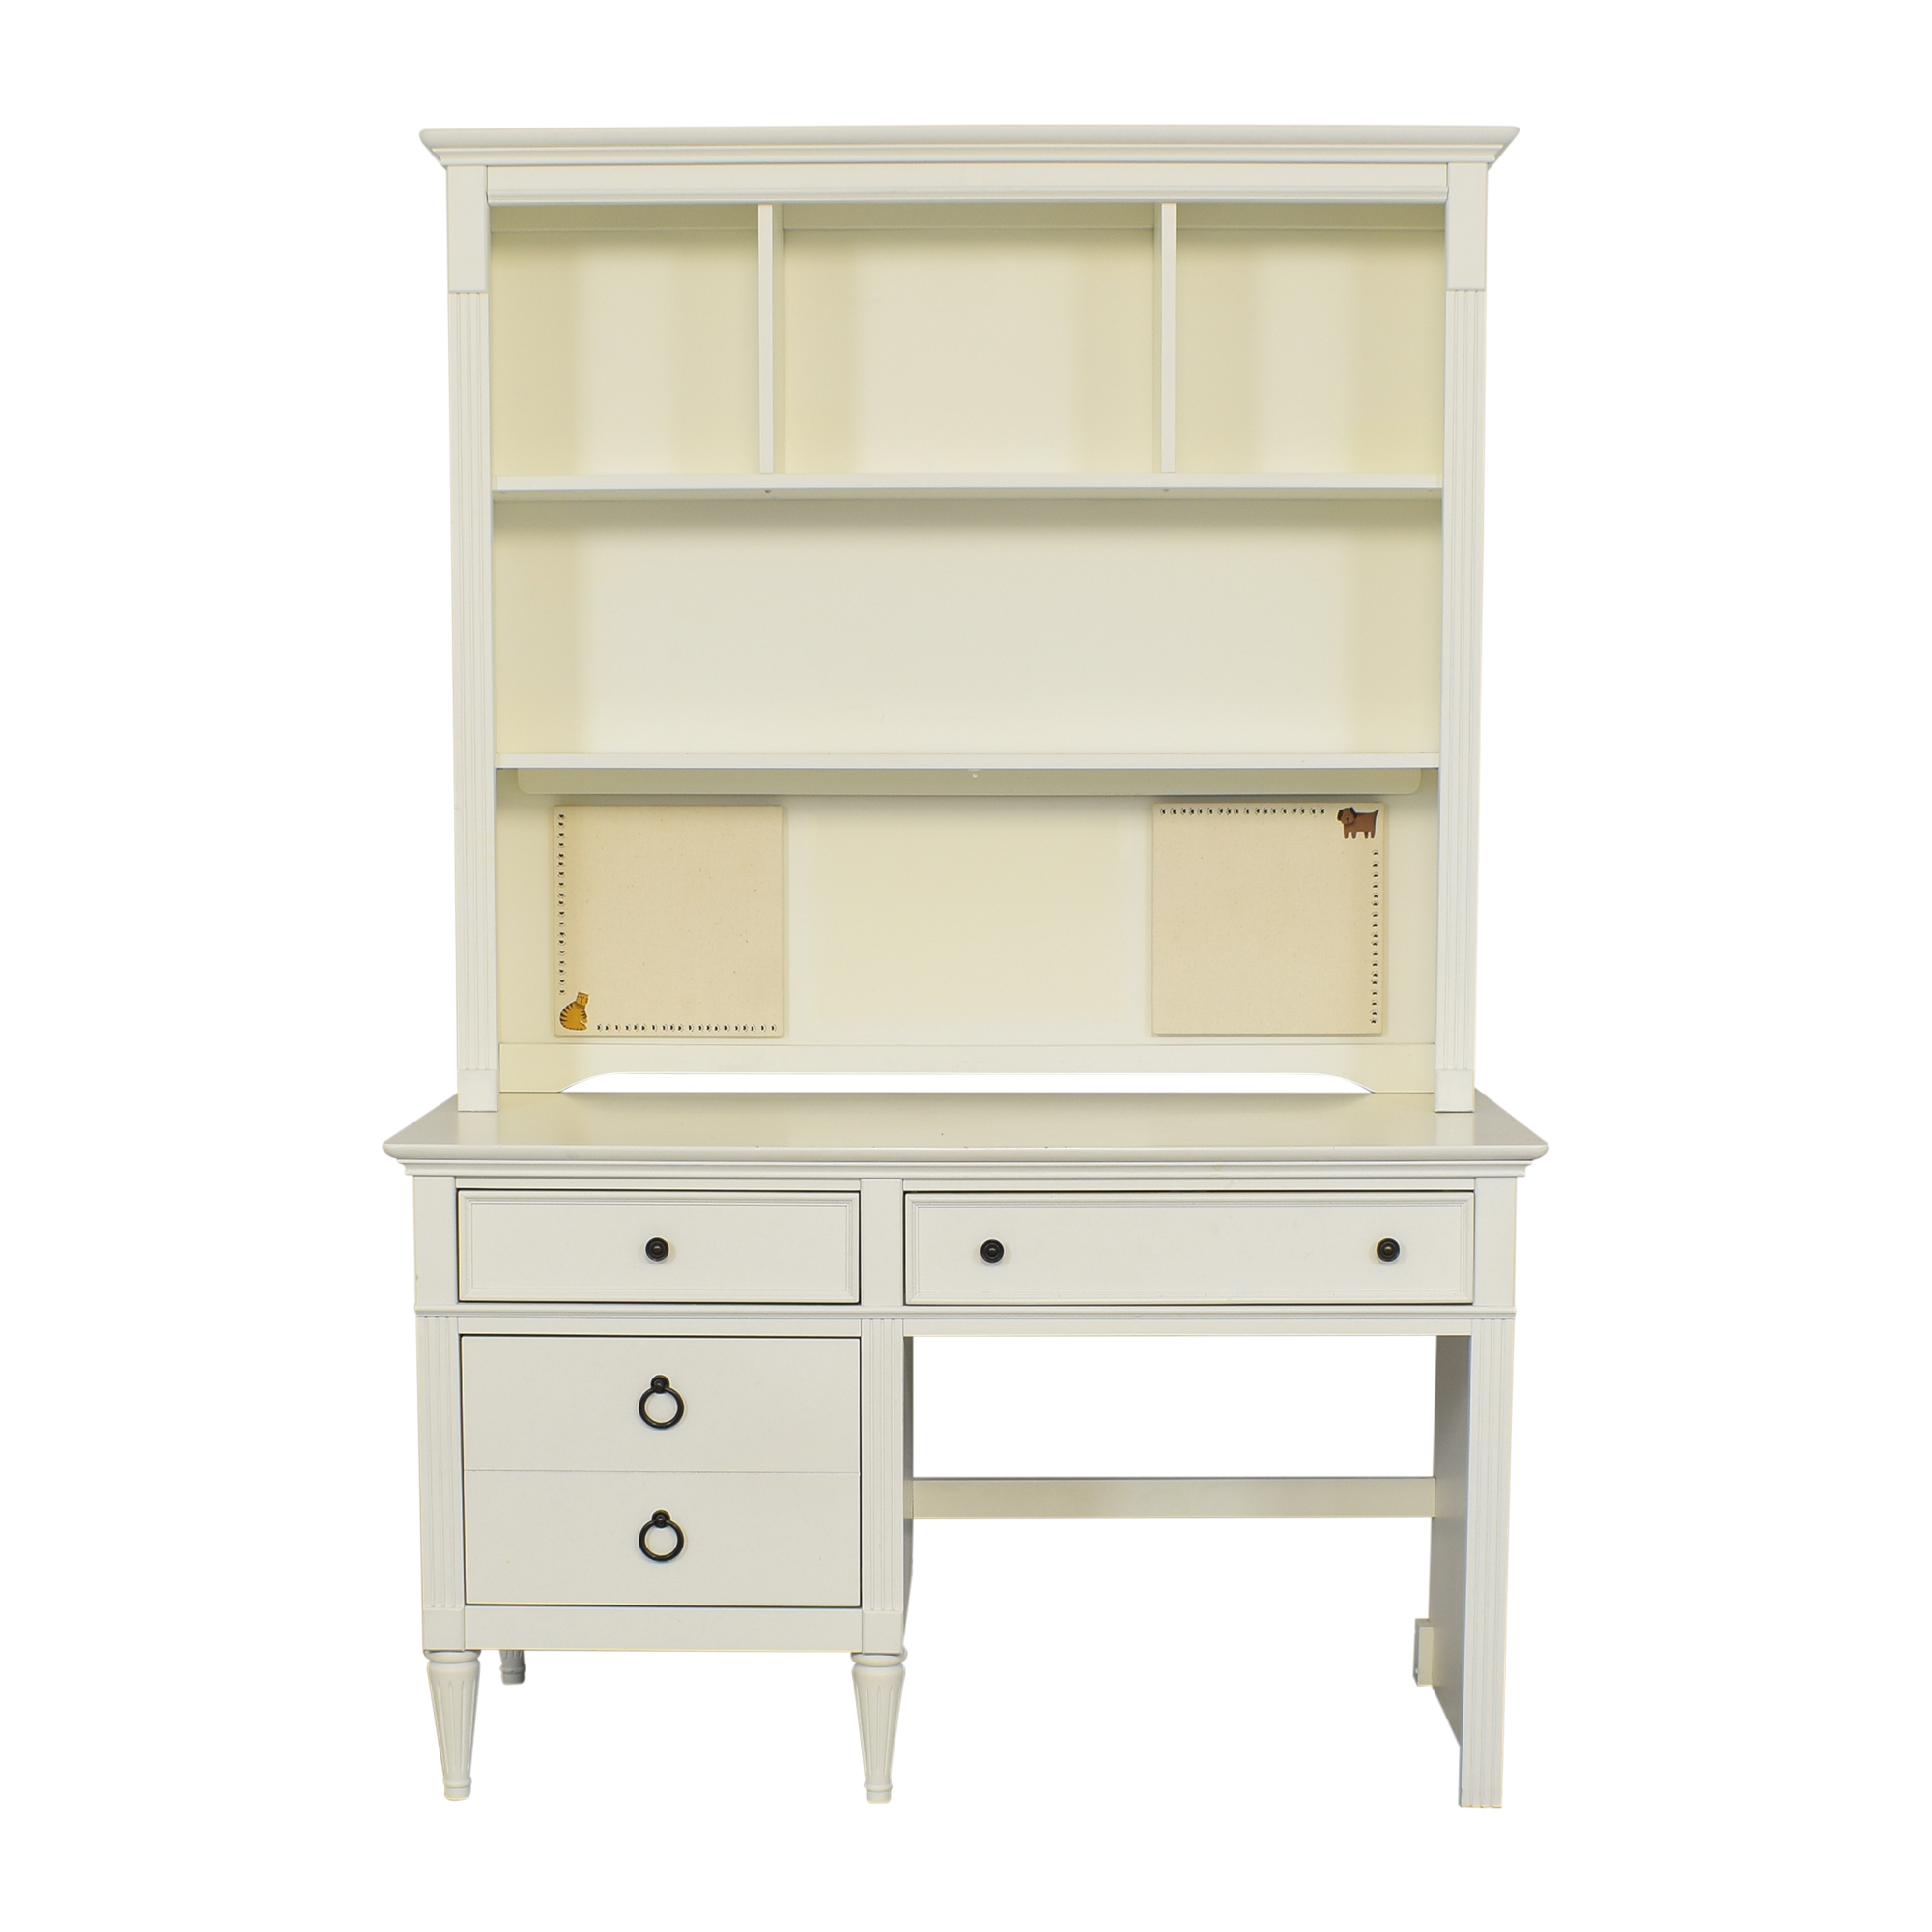 AP Industries Mary-Kate and Ashley Collection Desk with Hutch white